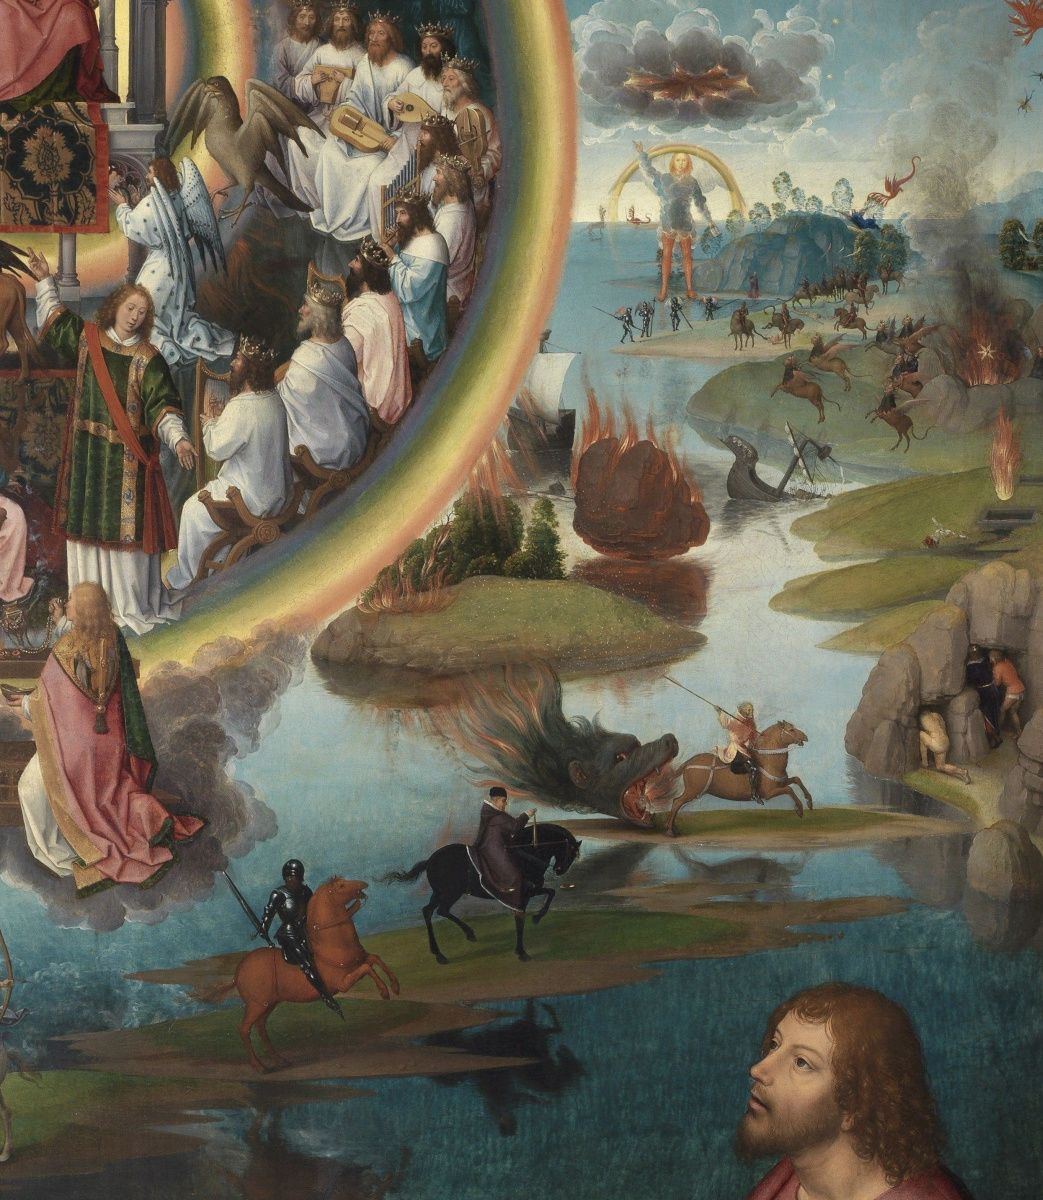 Hans Memling. The mystical betrothal of St. Catherine of Alexandria. Triptych. Right wing: Saint John the Evangelist on Patmos. Fragment